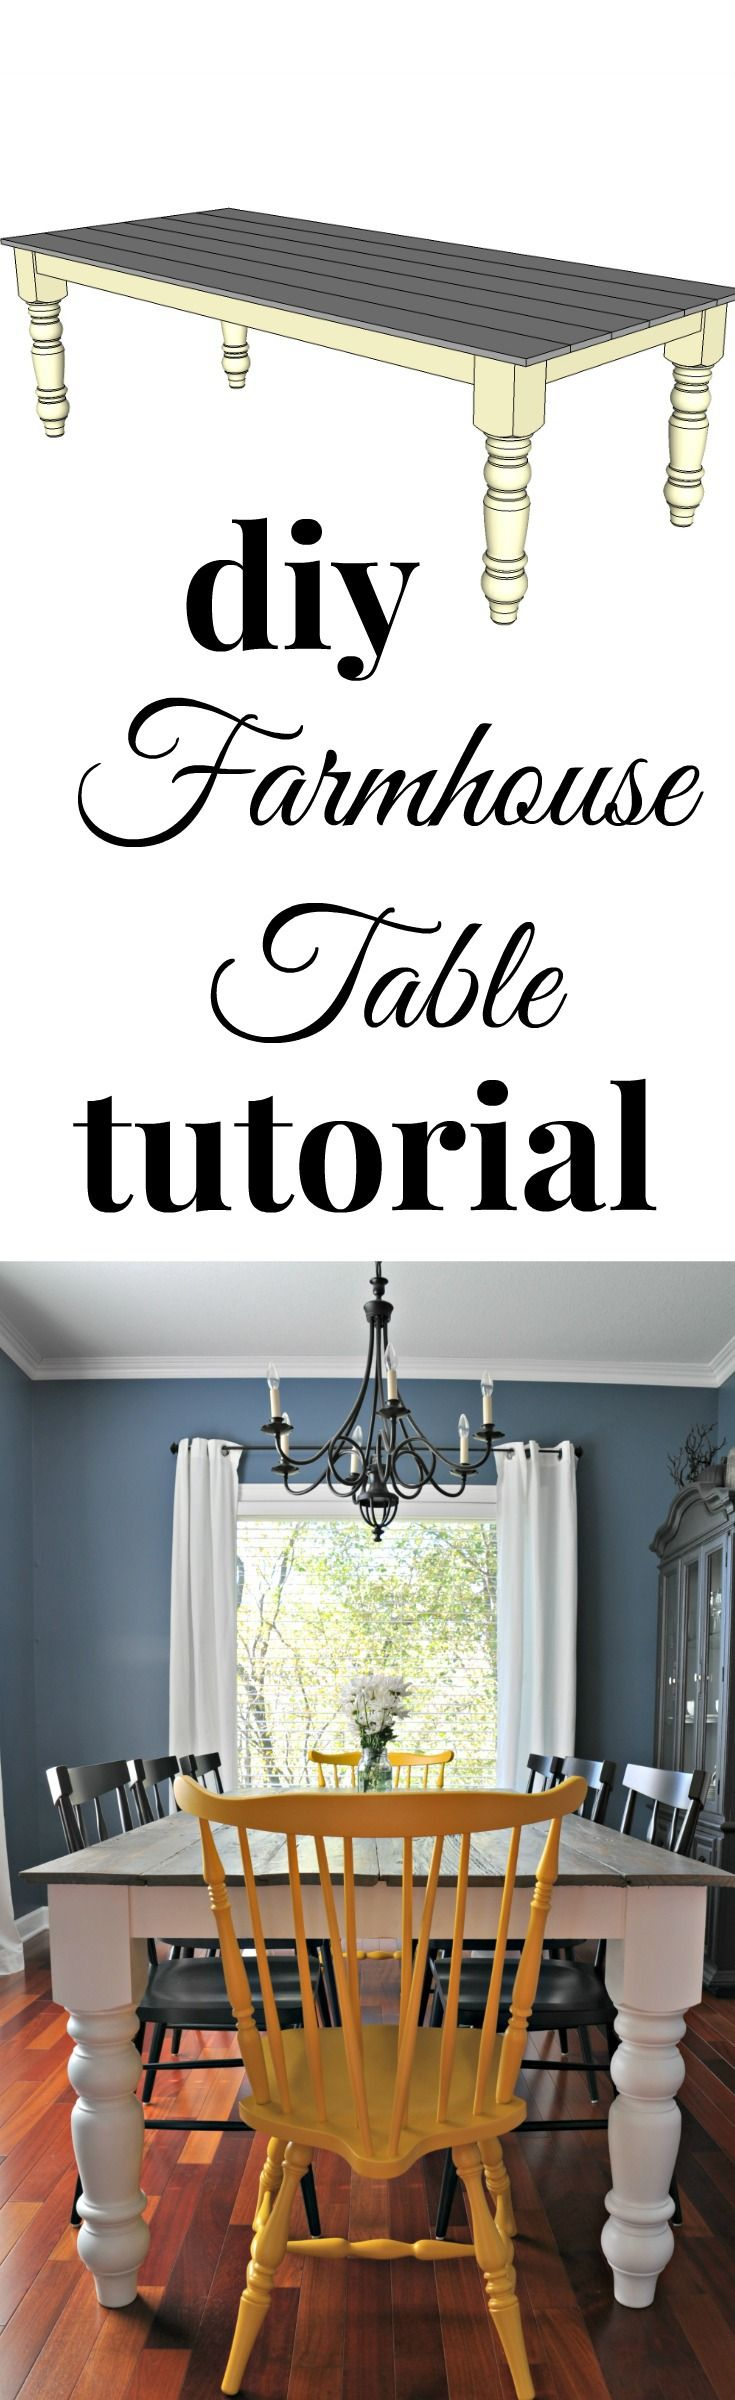 Home Decor Ideas Pinterest Part - 28: DIY Farmhouse Table Tutorial. Great Diagrams To Help You Along!